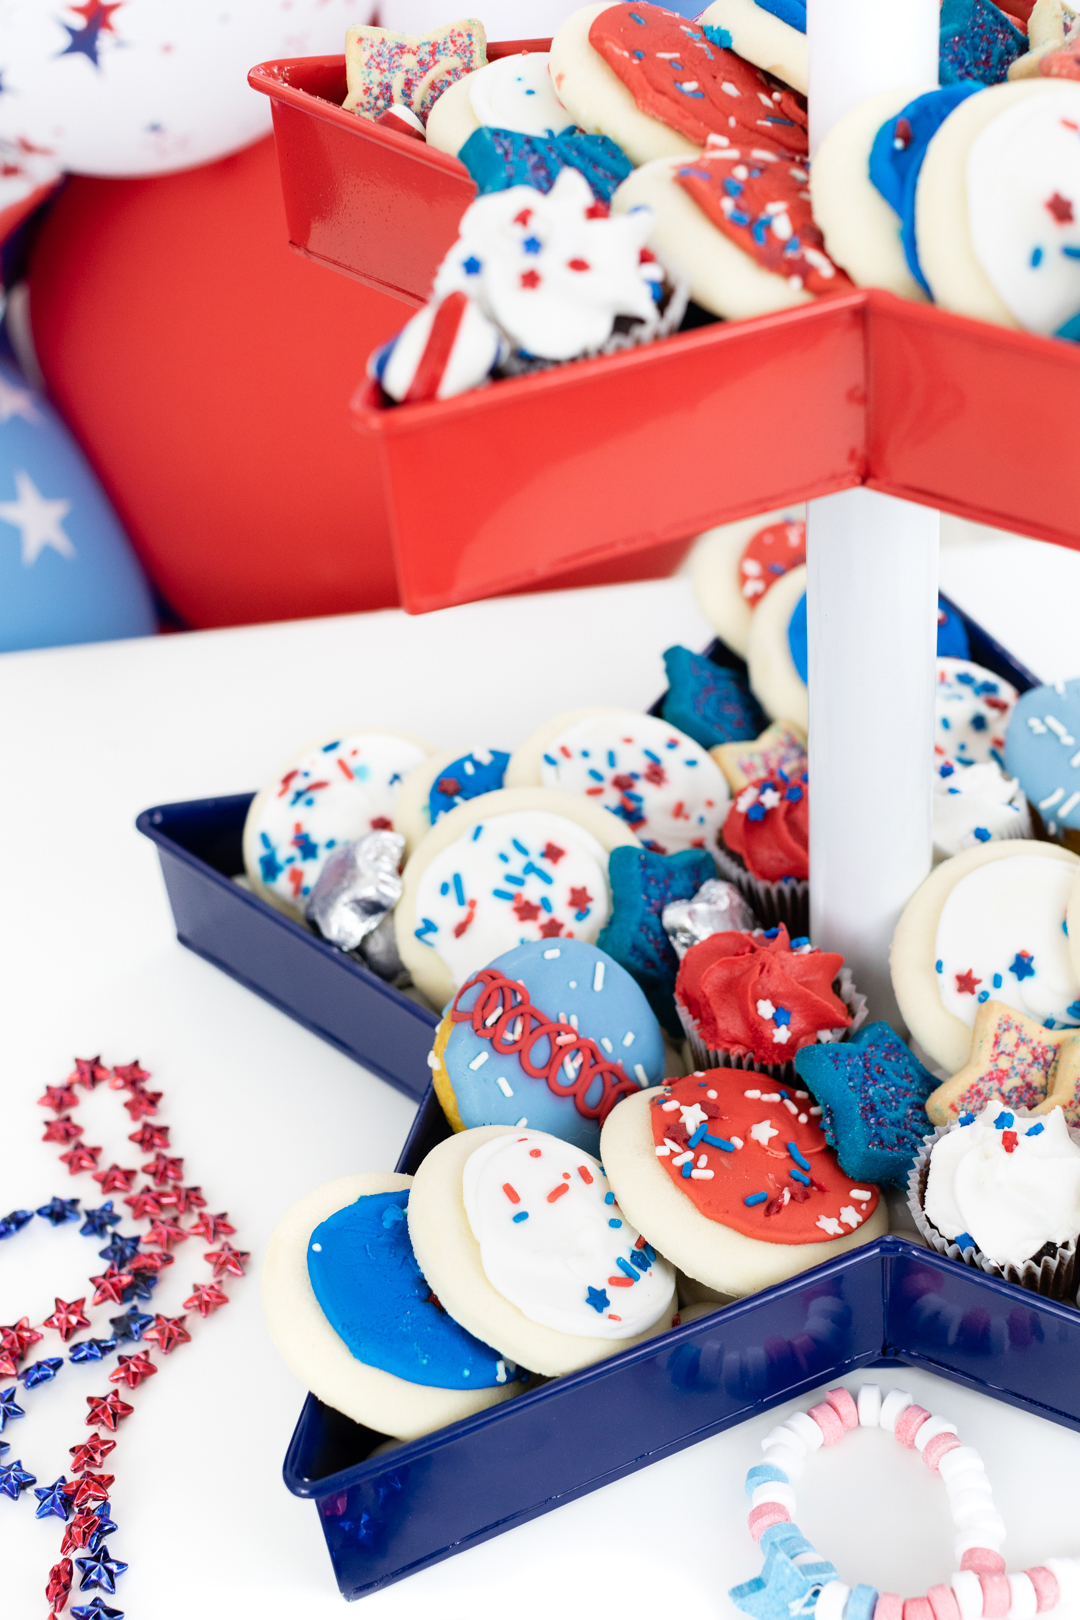 up close of red white and blue desserts. Cookies, cupcakes and candy.